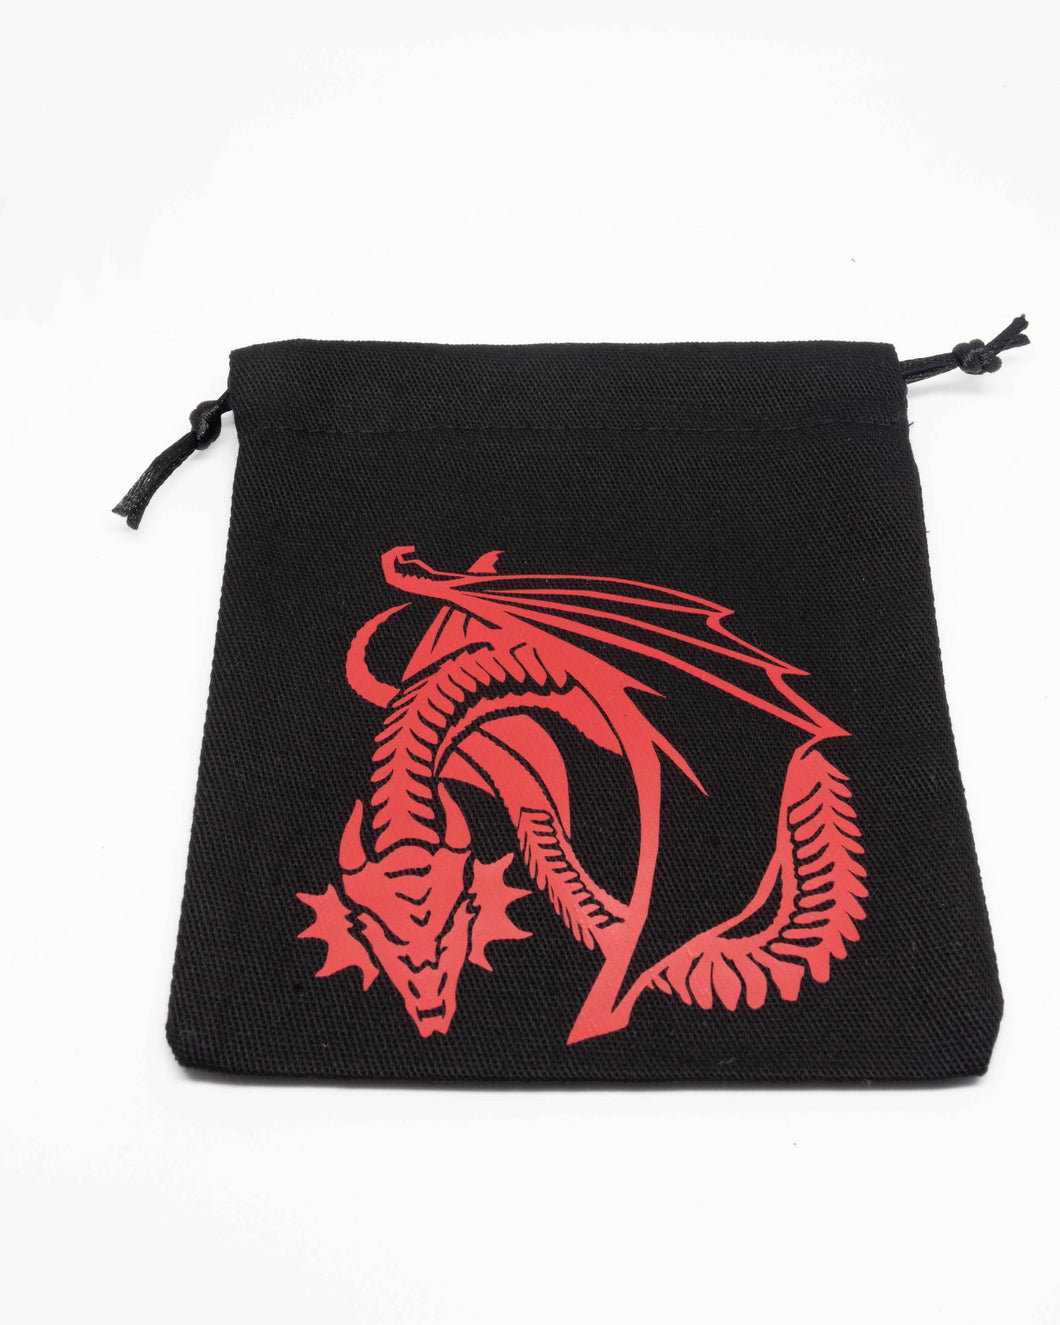 Dice Bag, Black with Red Dragon Print